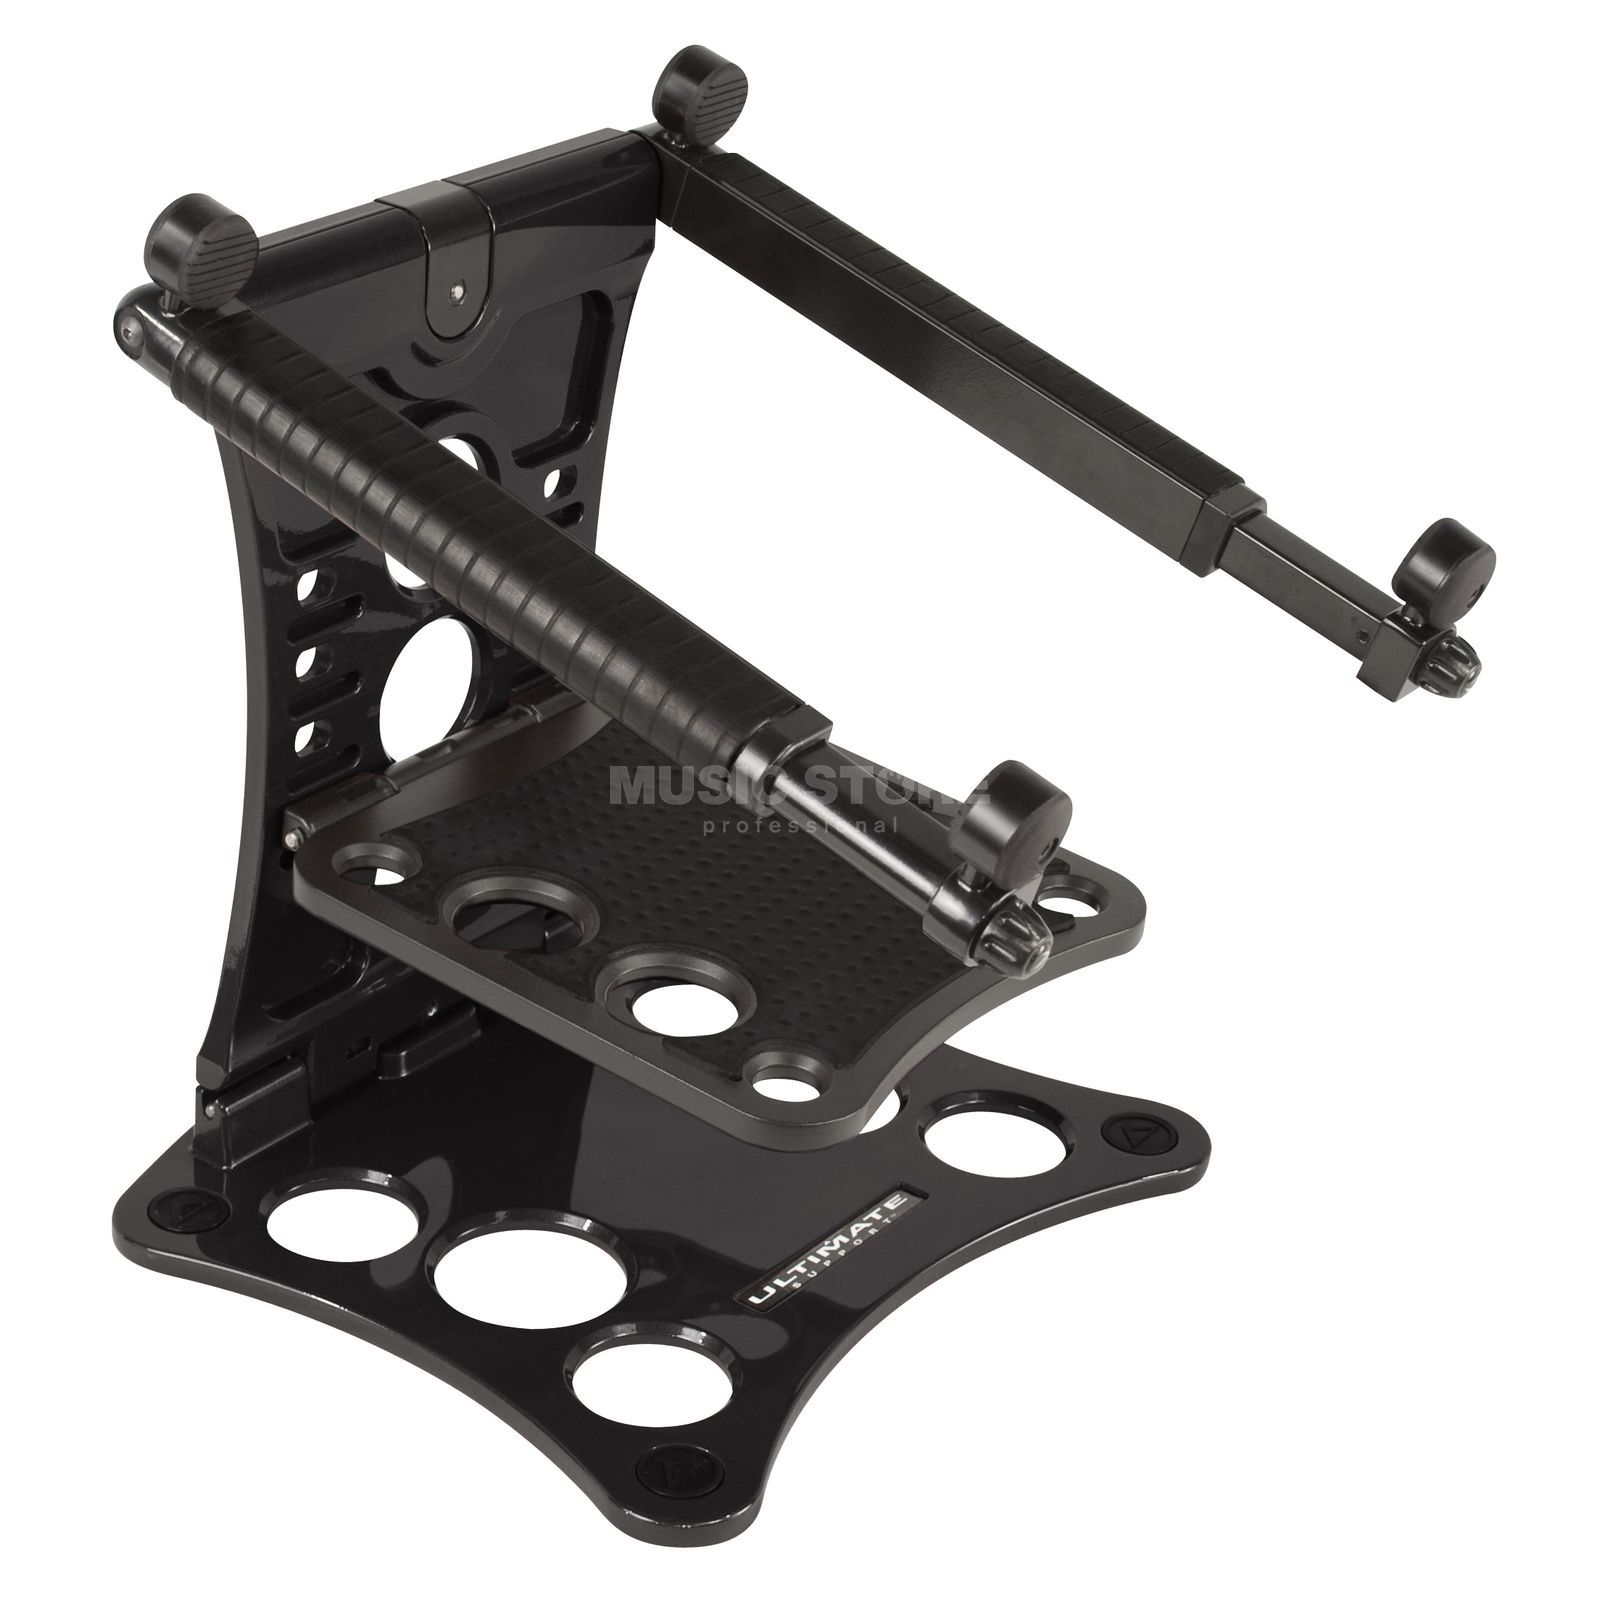 Ultimate Hyperstation Black LPT-1000B Laptop Stand Product Image